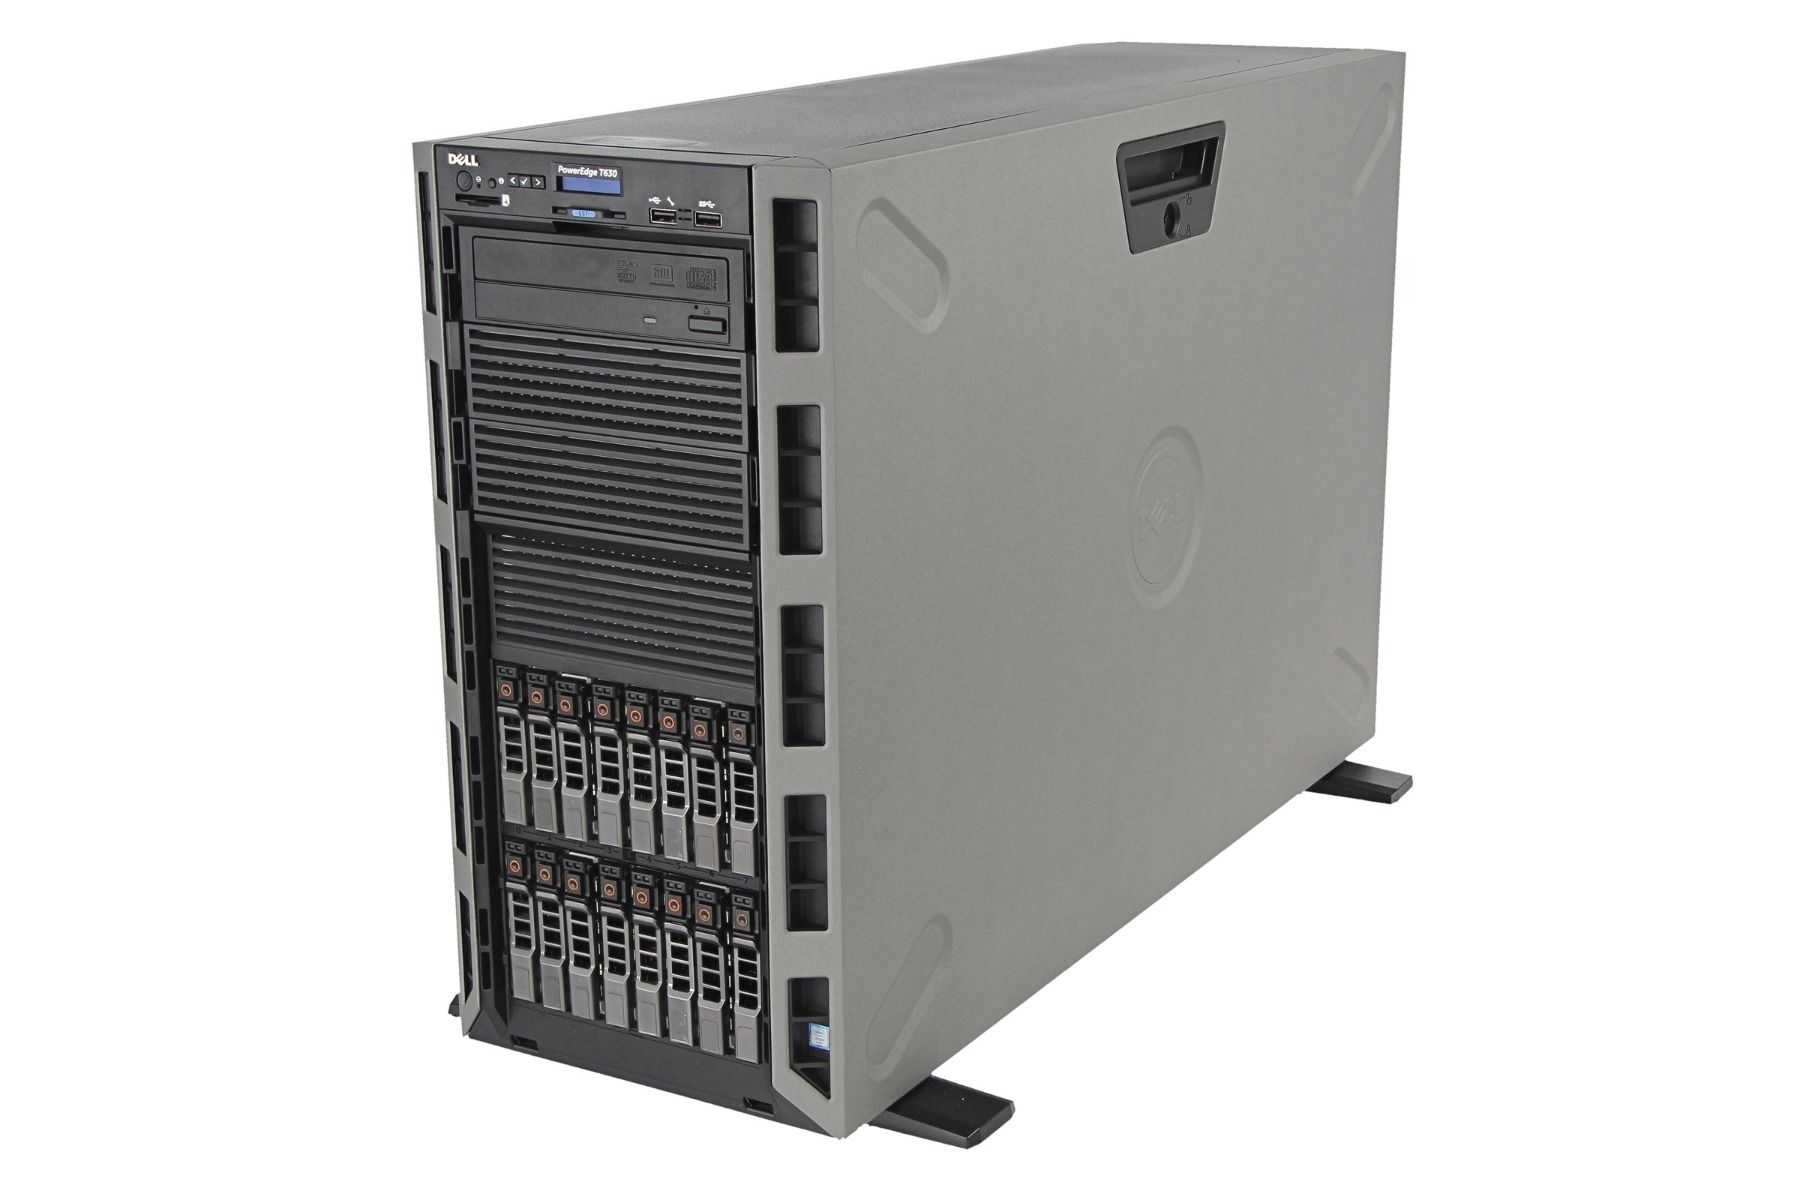 Configure your own Dell PowerEdge T630